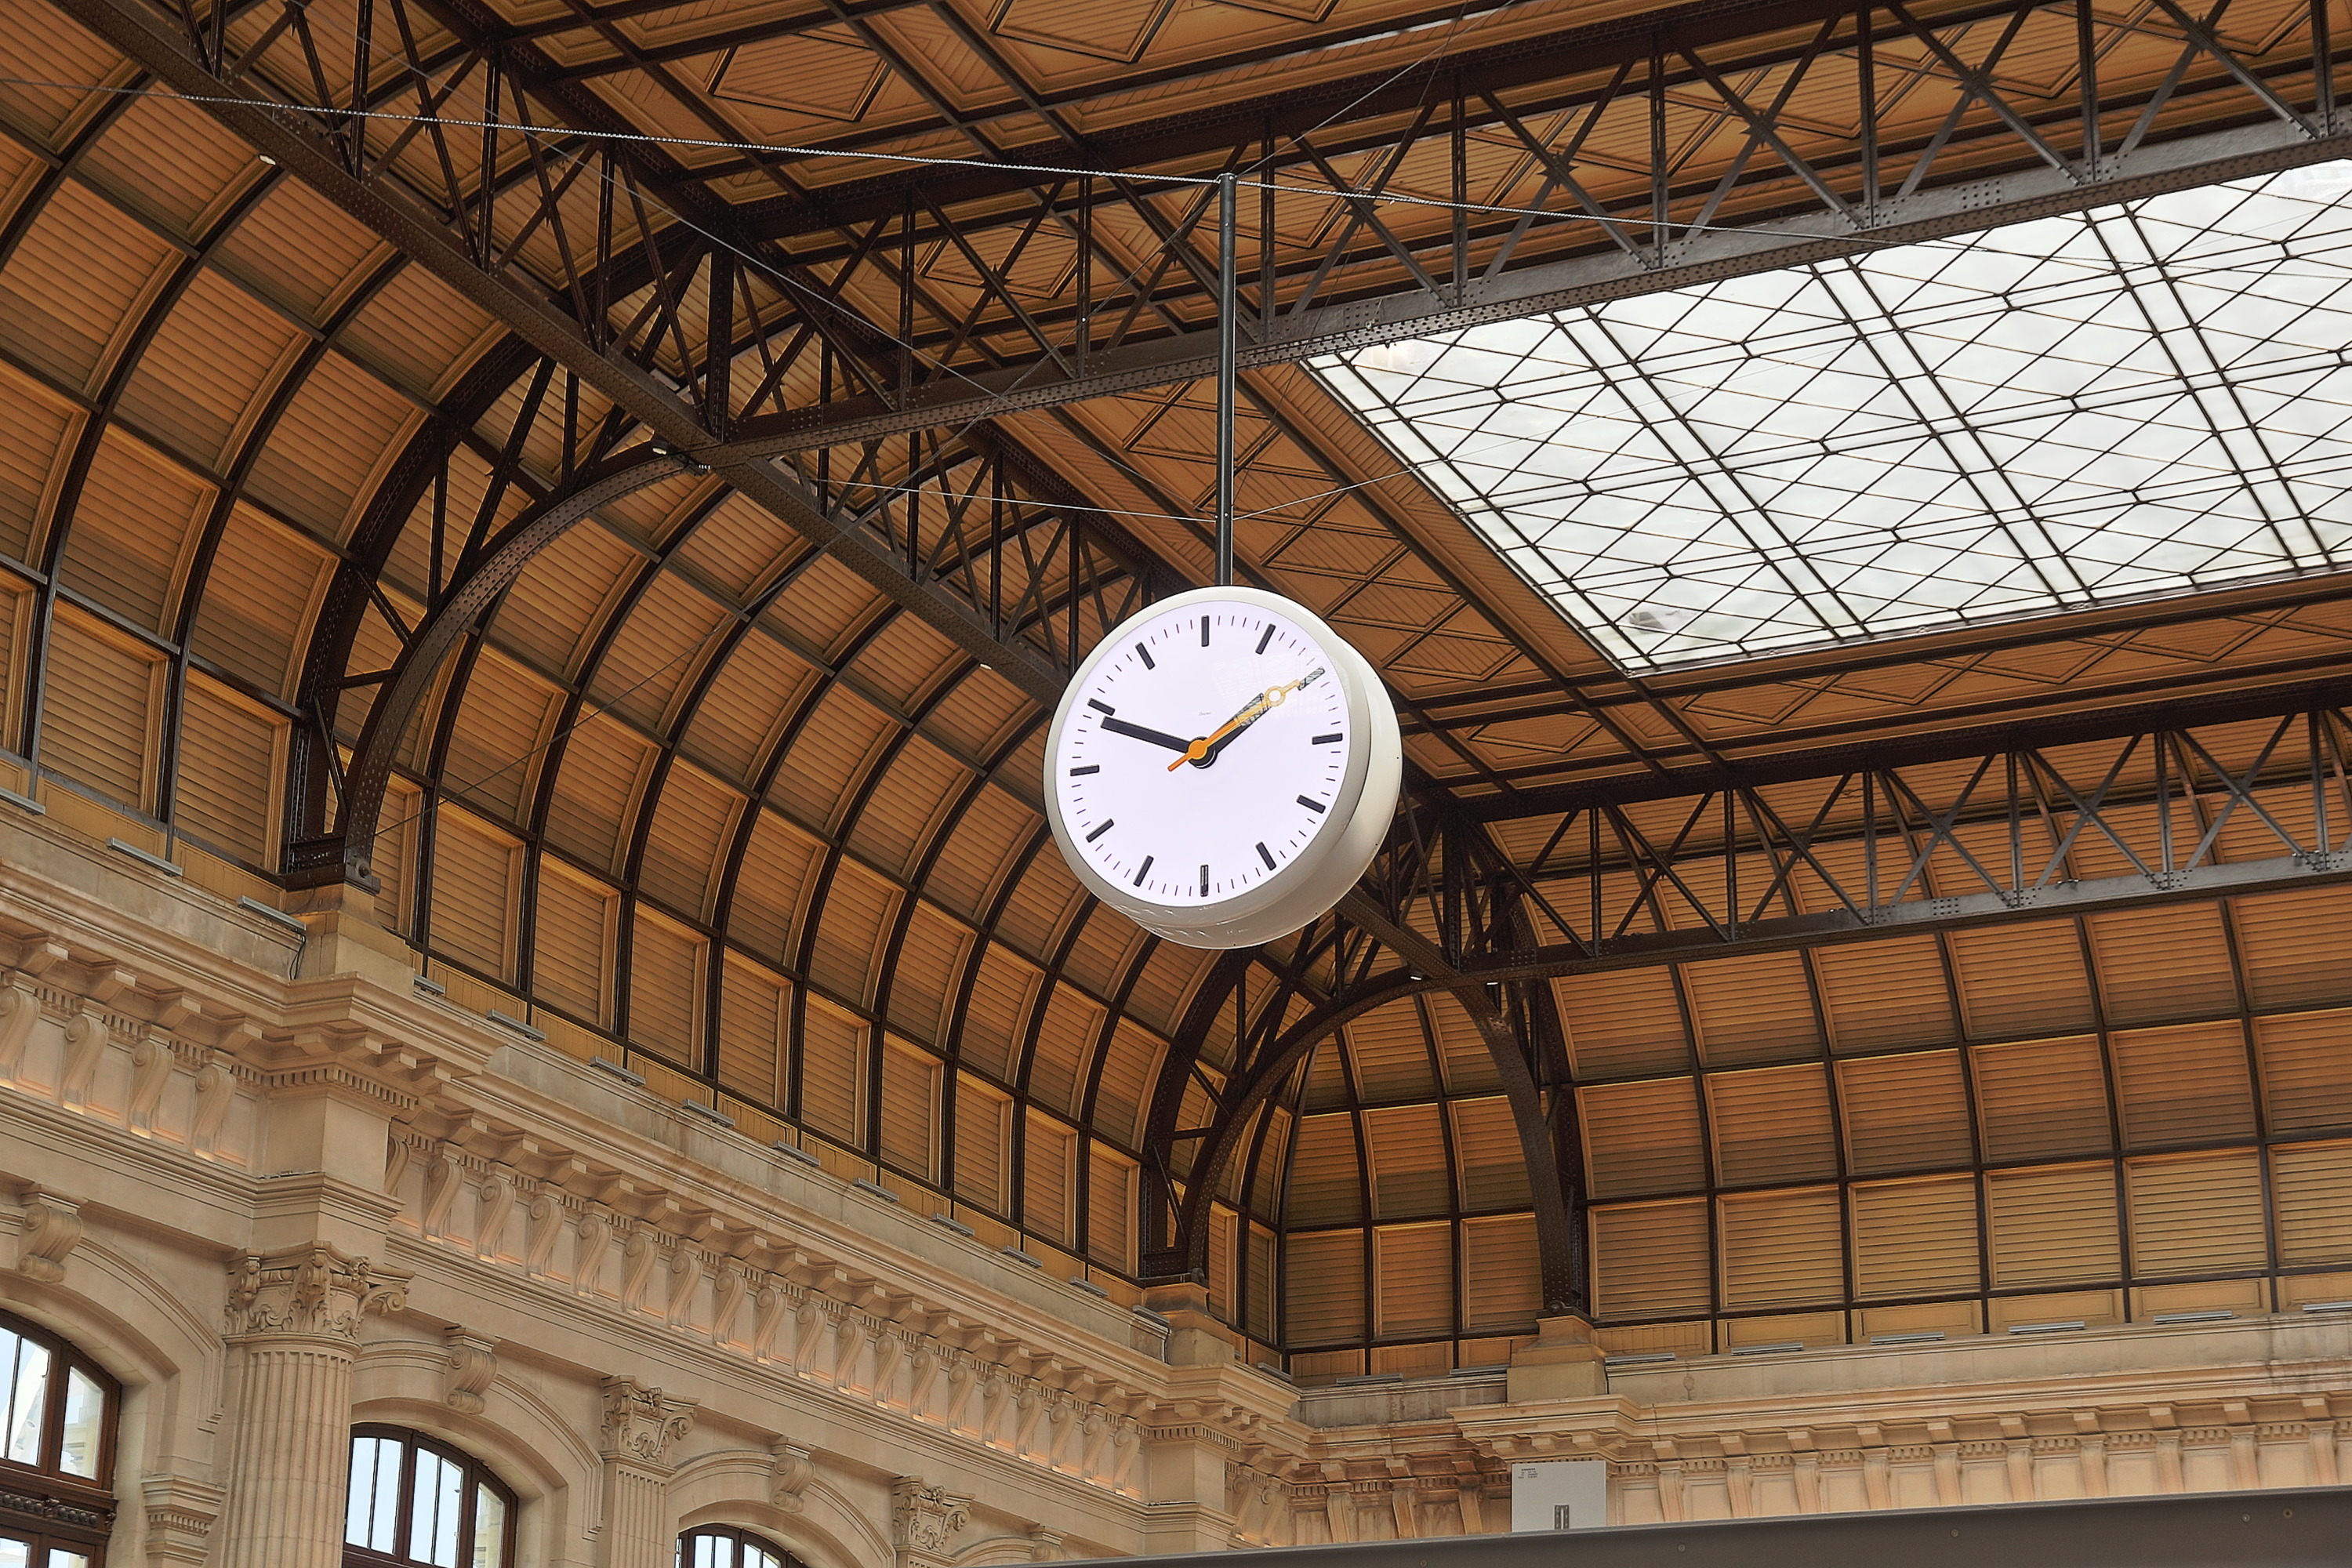 Hanging clock Bordeaux railway station